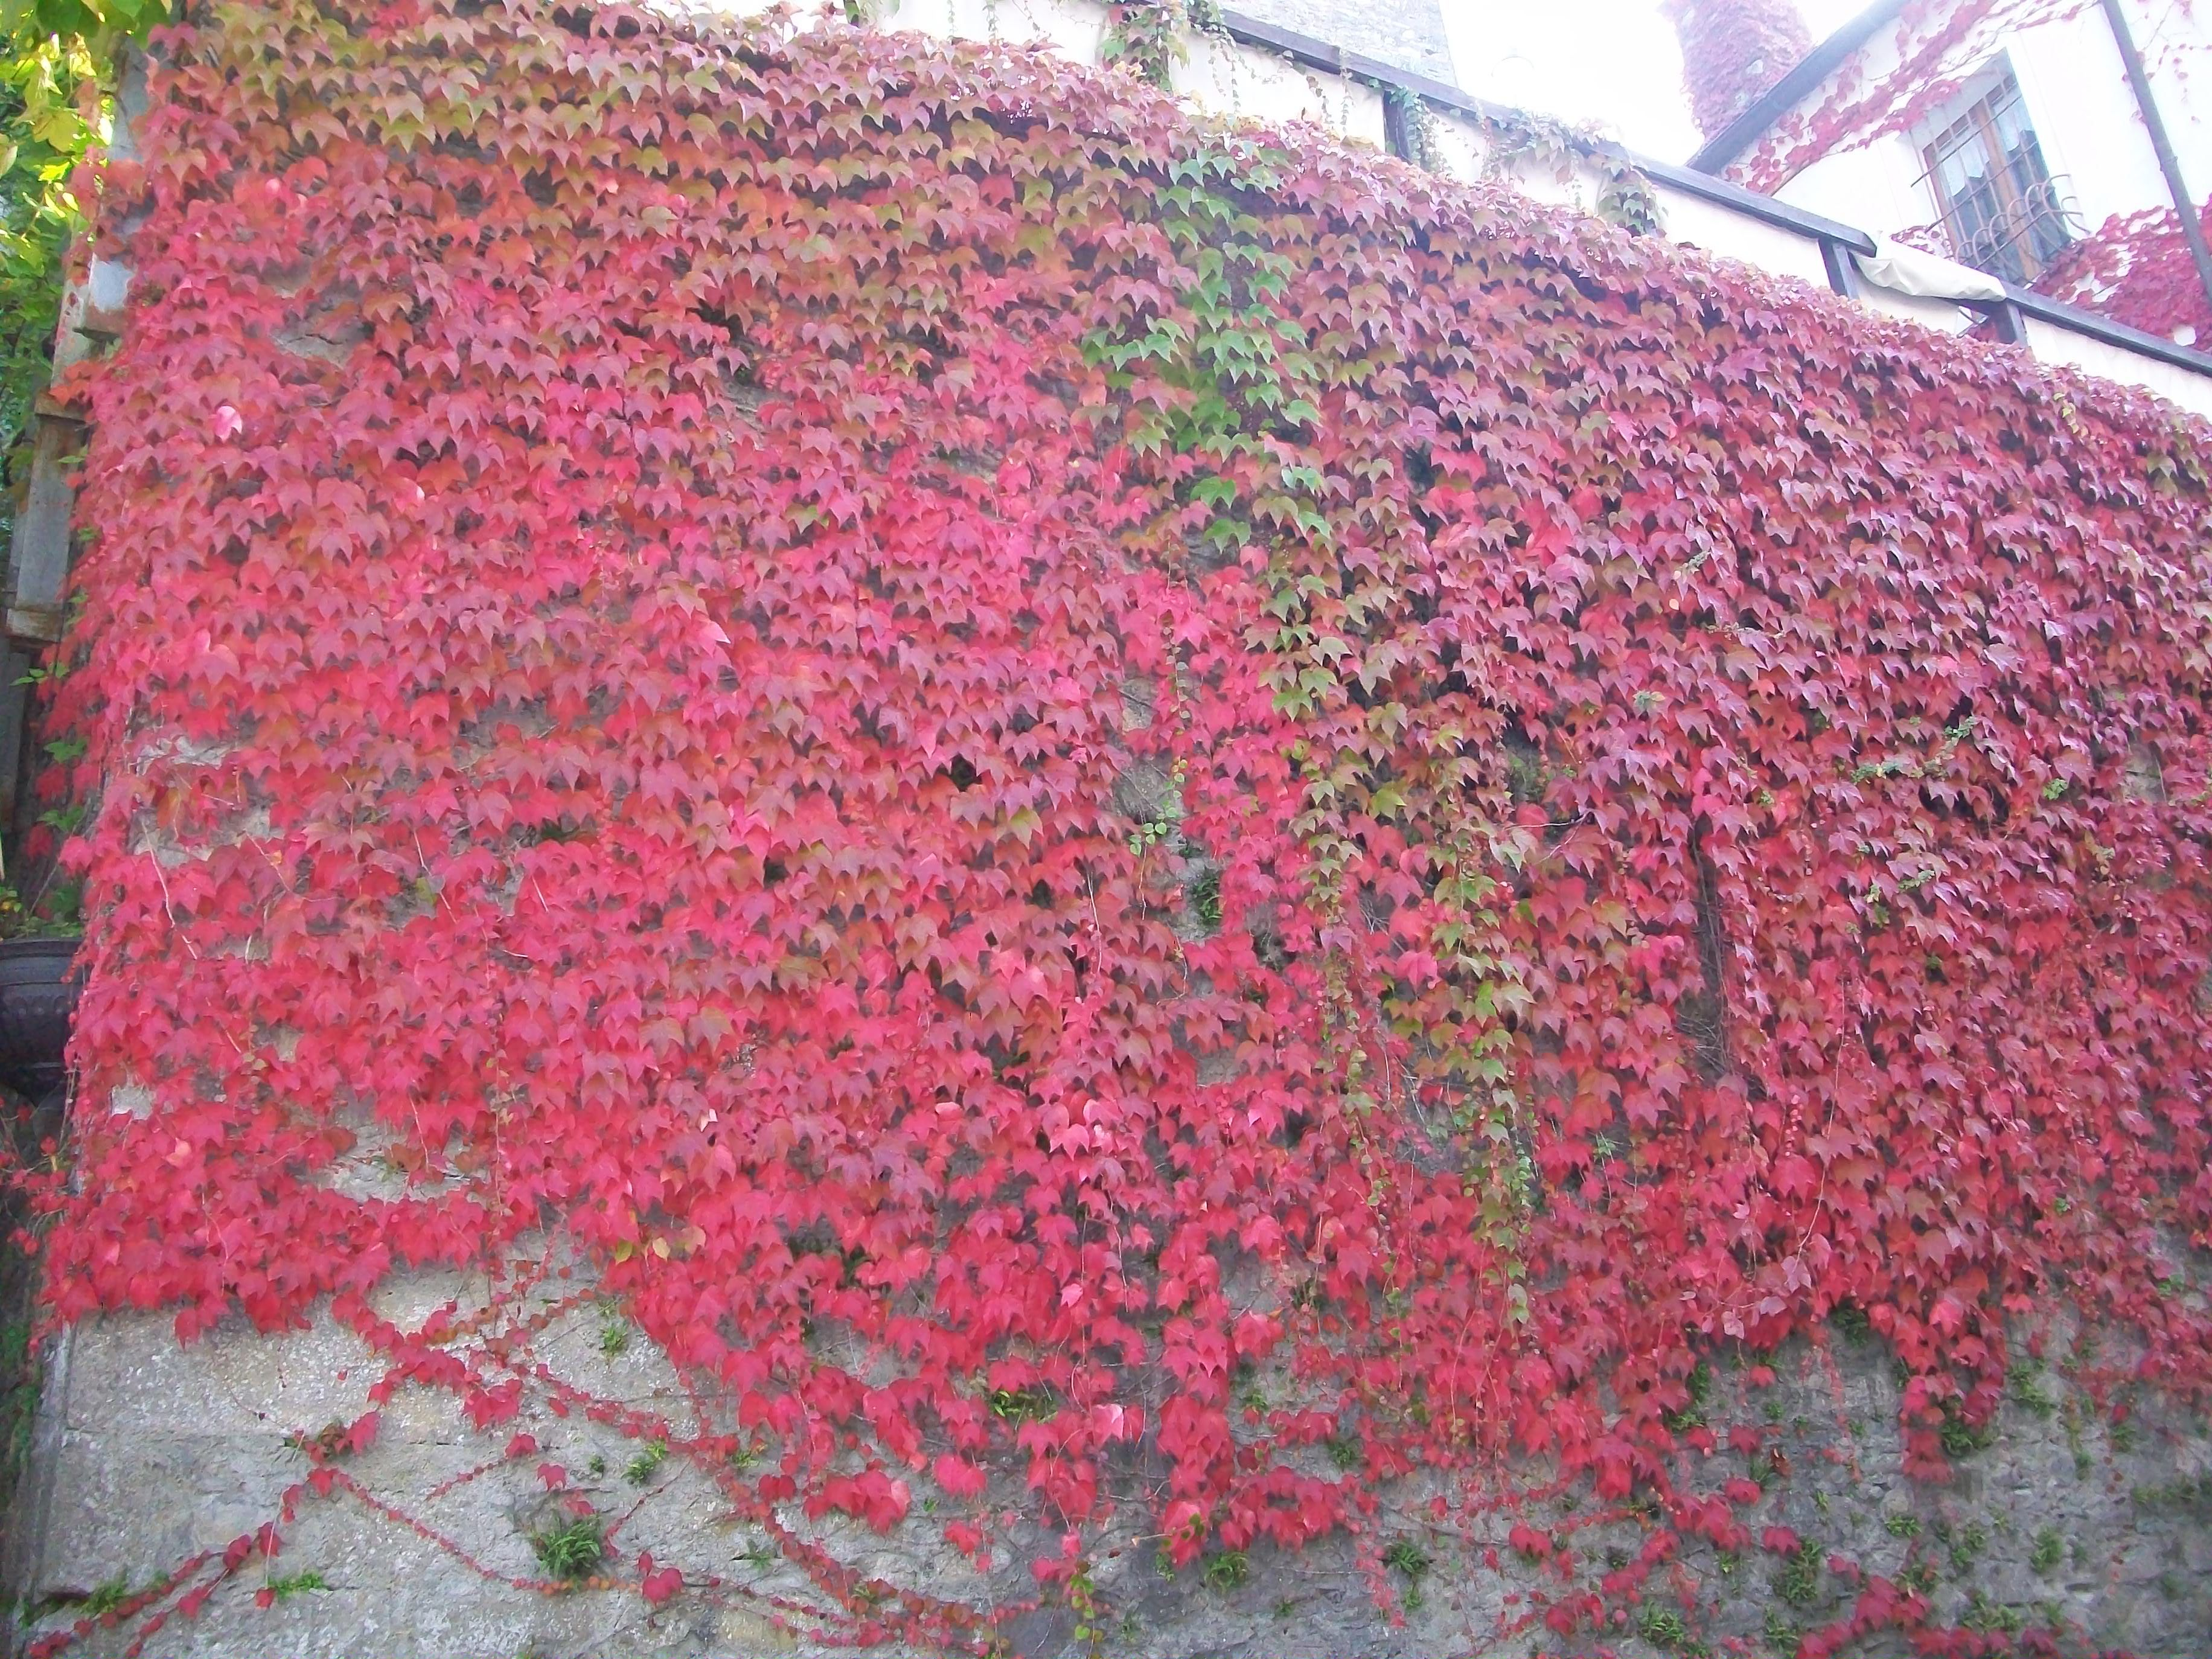 Wall of red leaves (Italy)